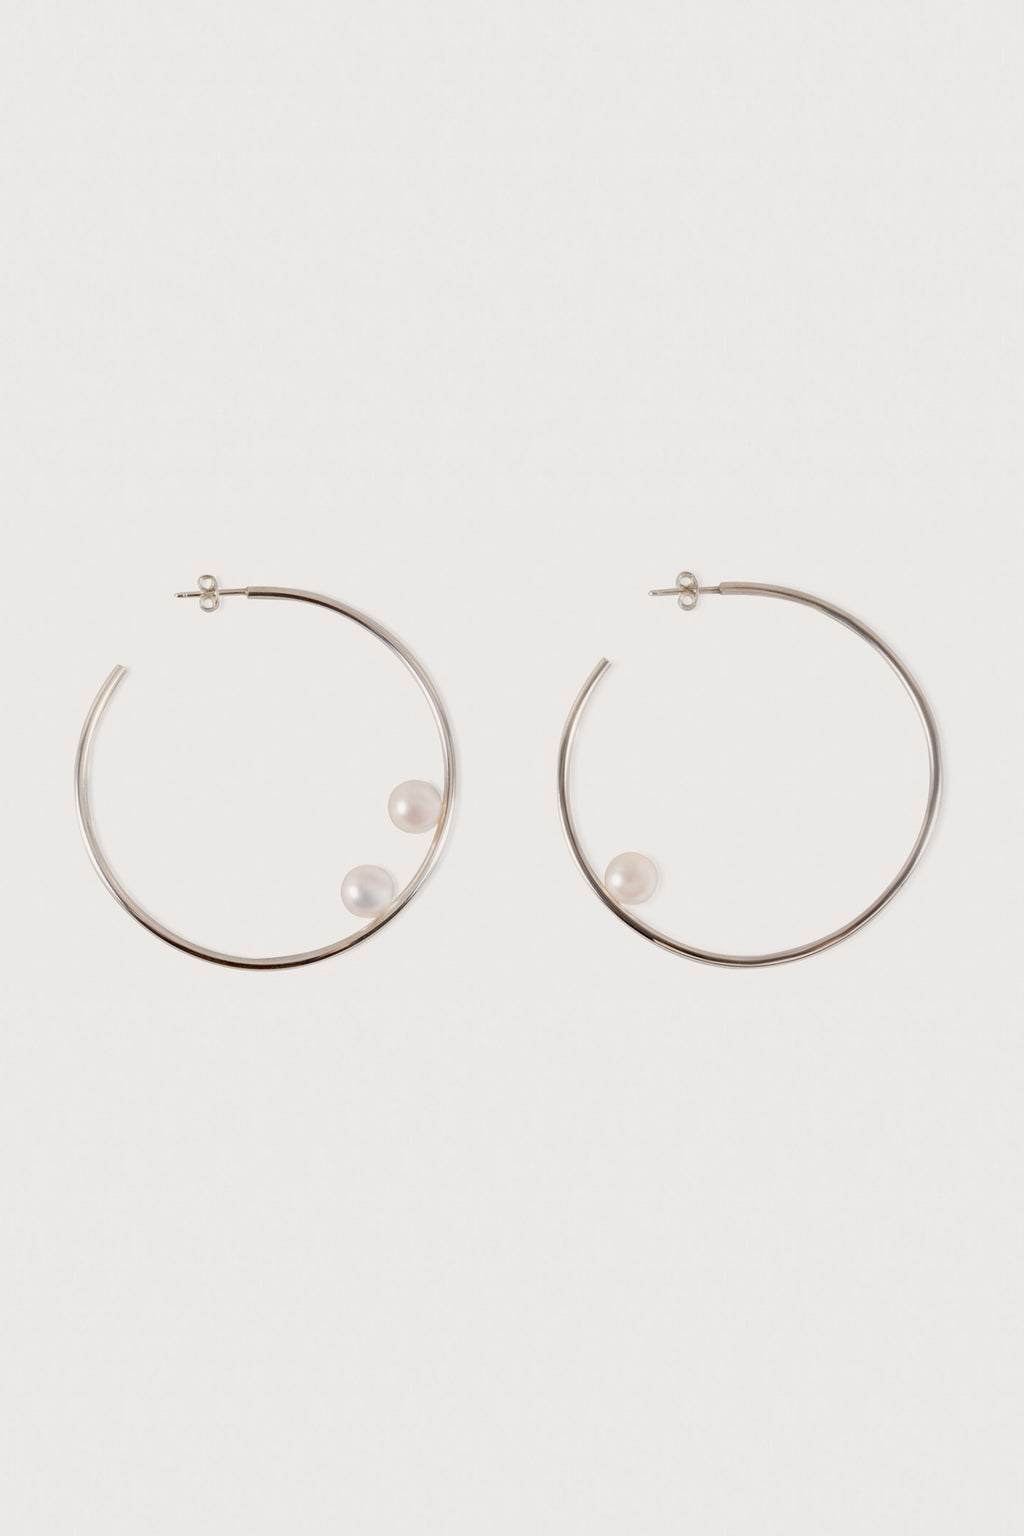 Asymetrical earrings with 3 fresh water pearls